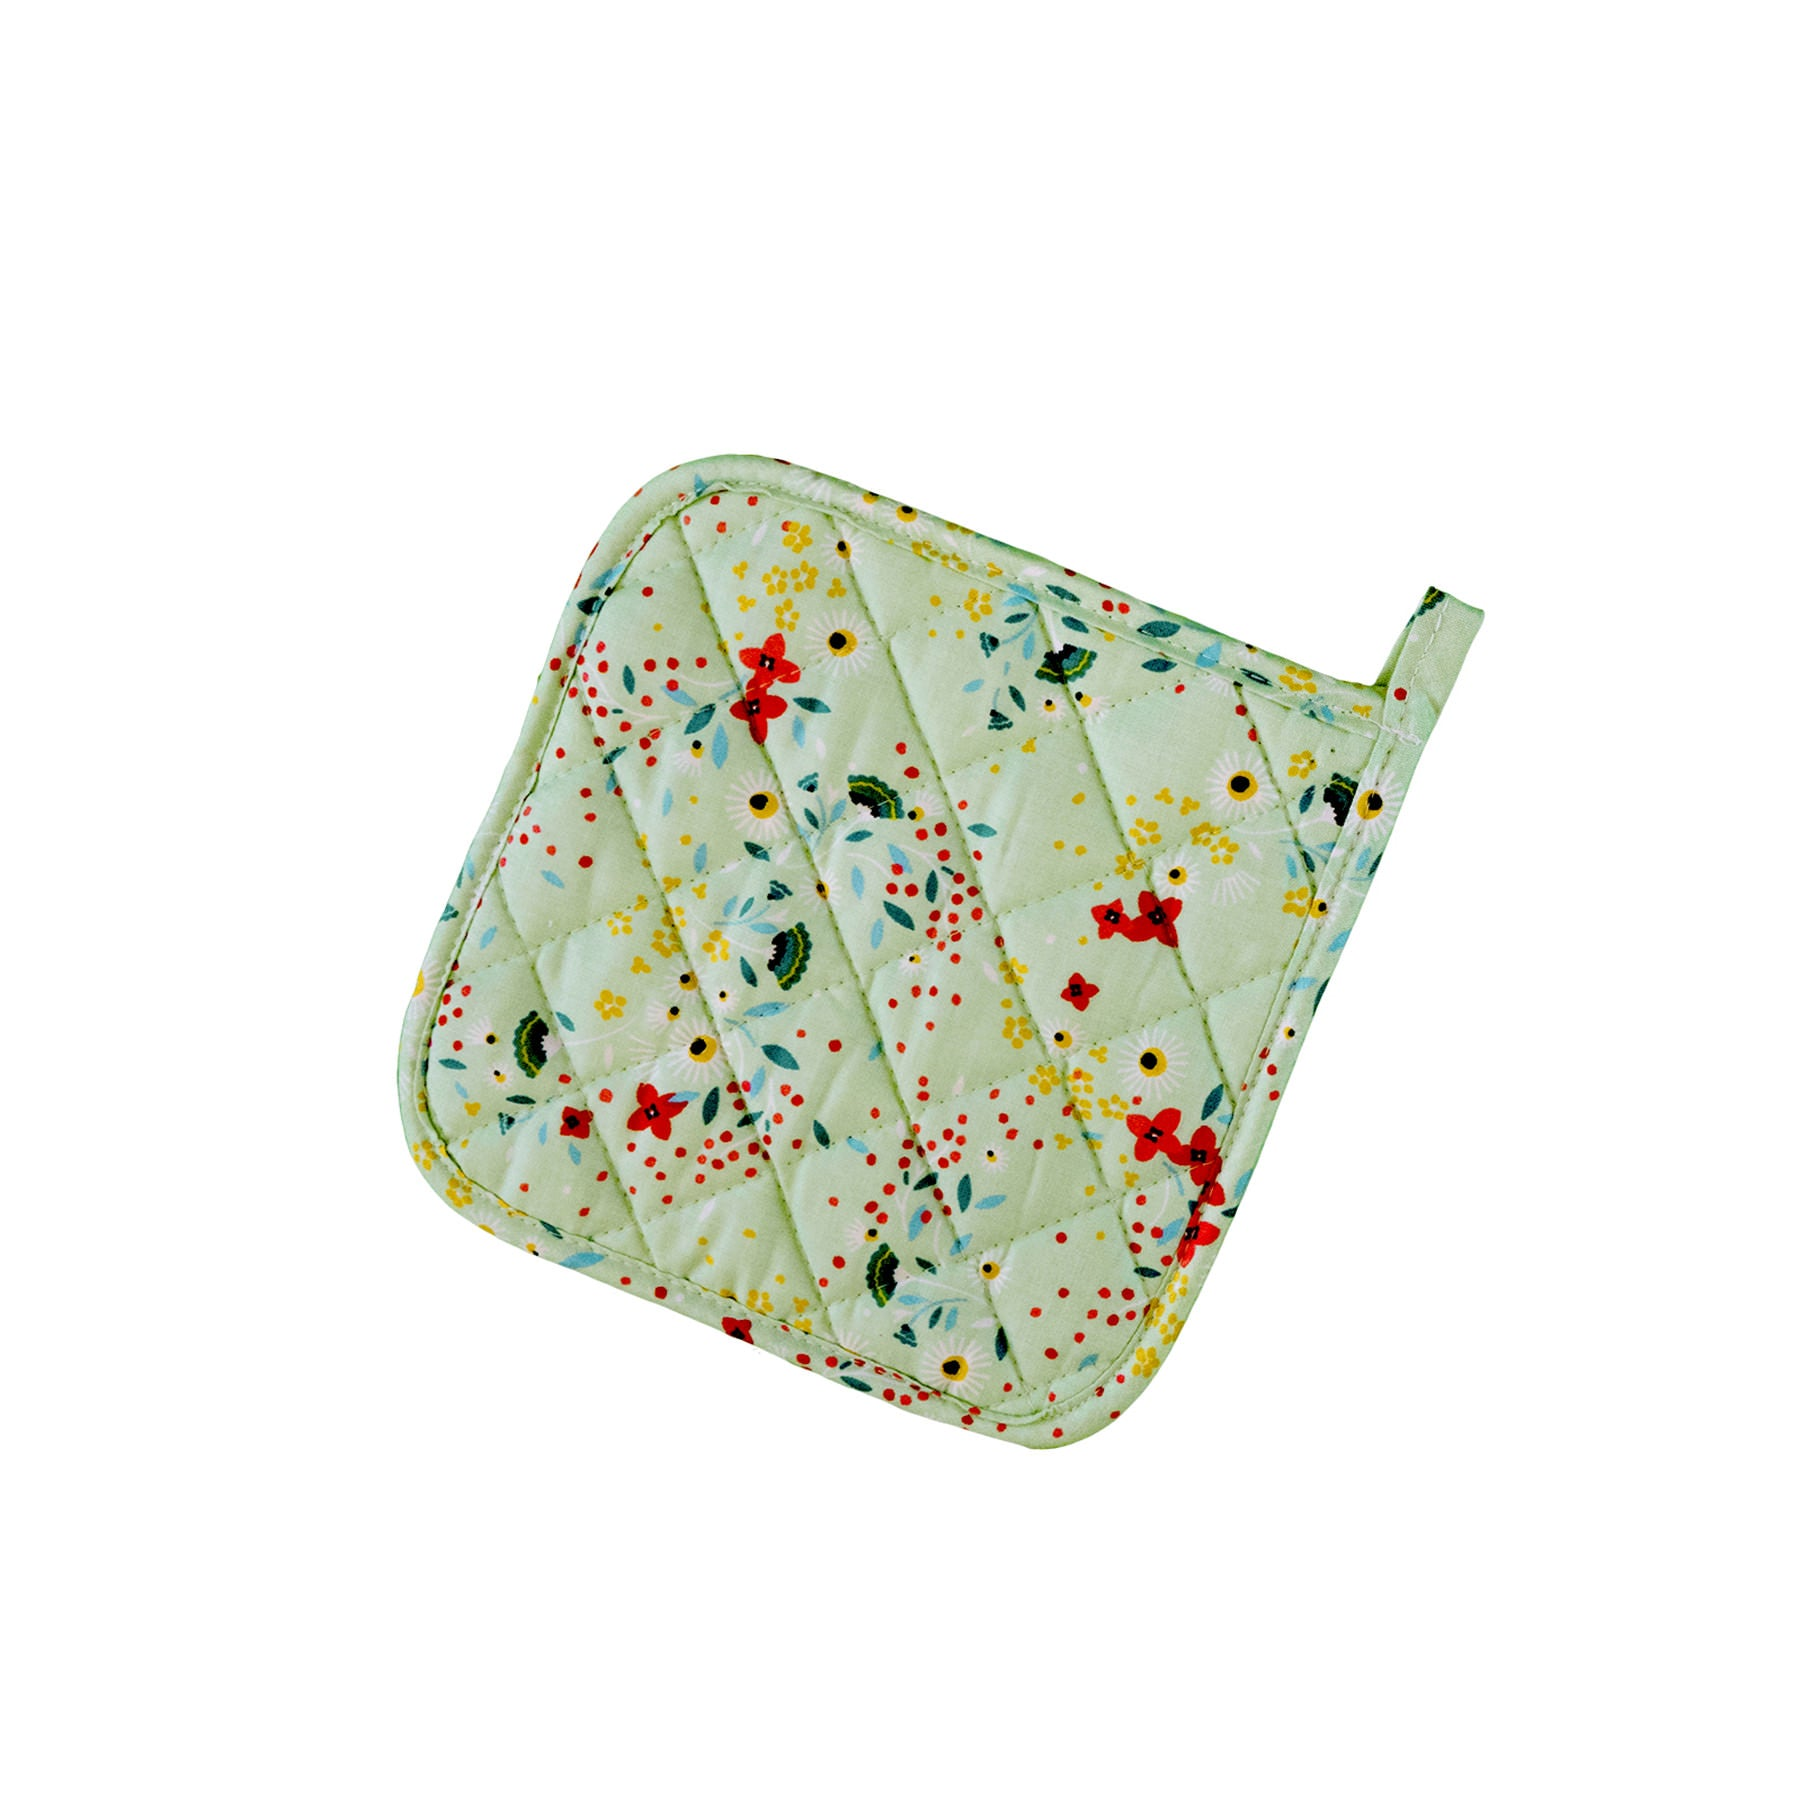 Stitch & Sparkle POT HOLDER 1 Piece Pack, Heat Resistant, 100% Cotton, Modern Scandinavian, MS Daisy Linden